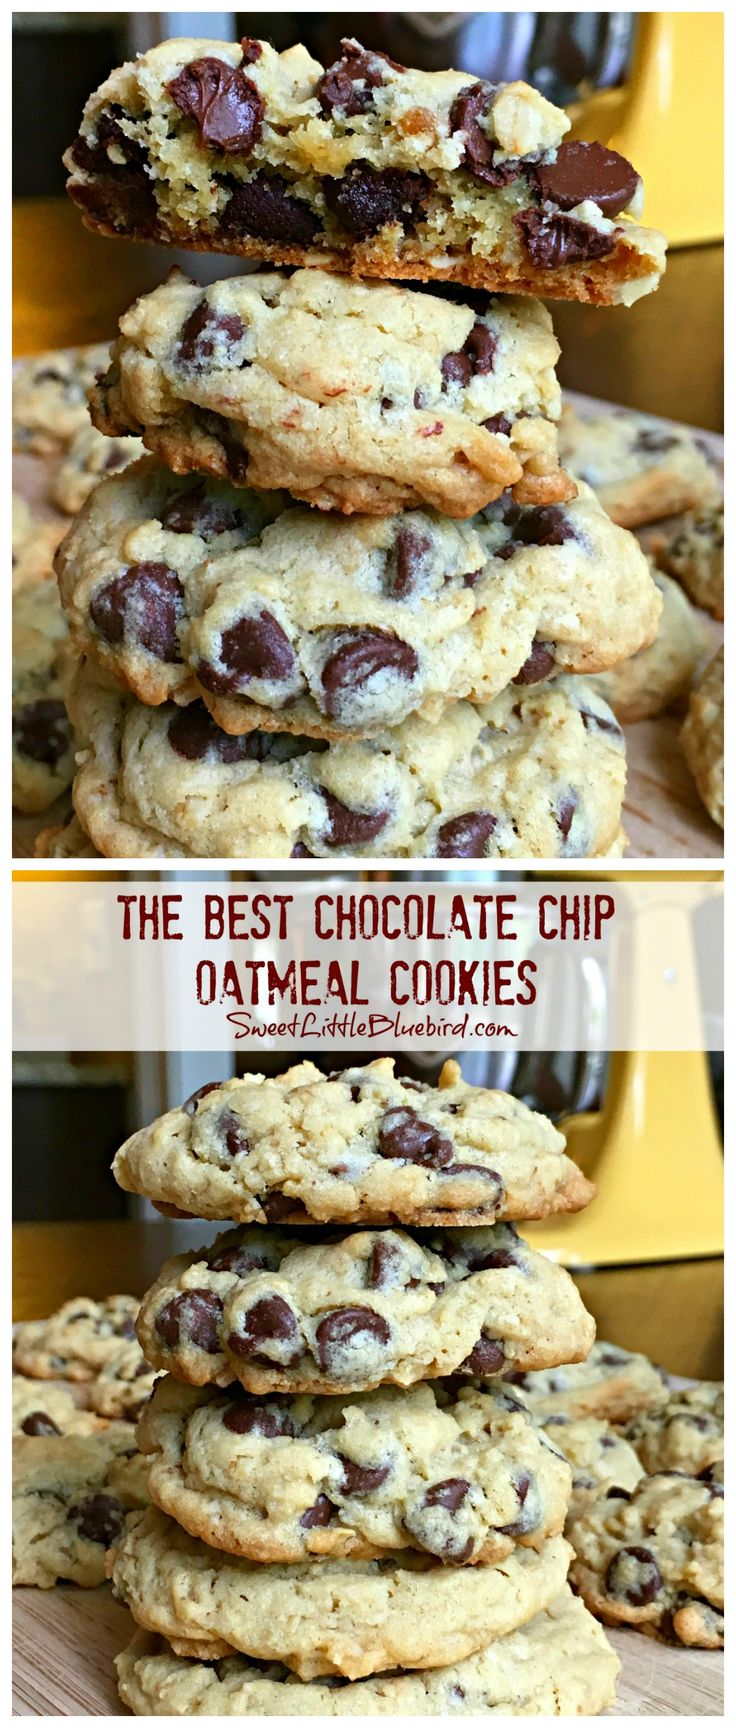 The Best Chocolate Chip Oatmeal Cookies Oatmeal Chocolate Chip Cookie Recipe Oatmeal